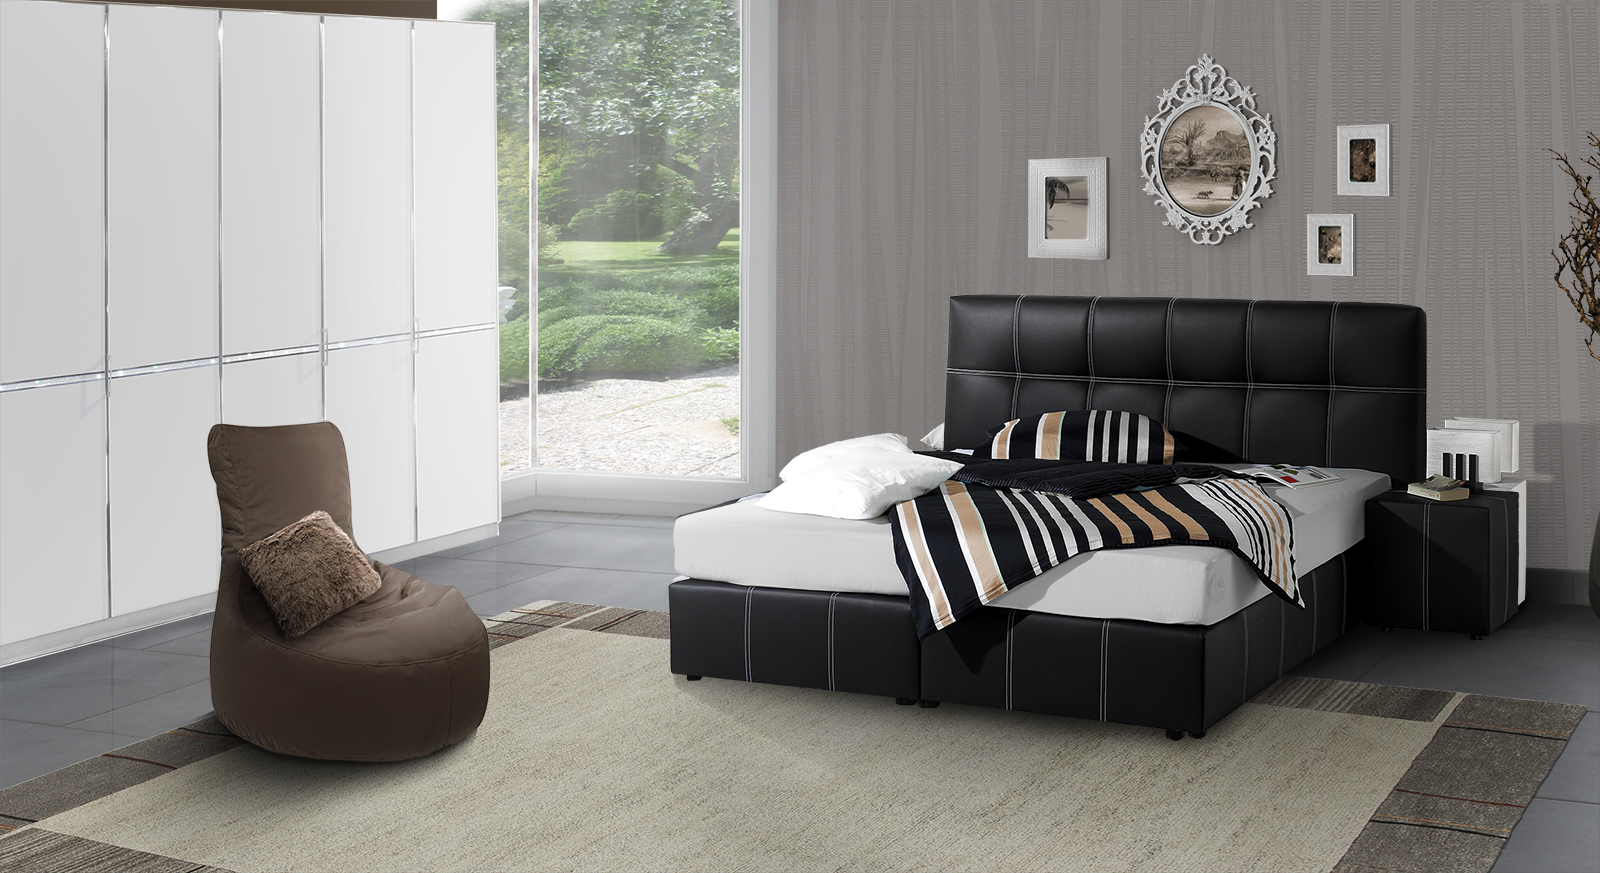 schlafzimmer boxspringbett schlafzimmer komplett mit boxspringbett kaufen auf betten de design. Black Bedroom Furniture Sets. Home Design Ideas